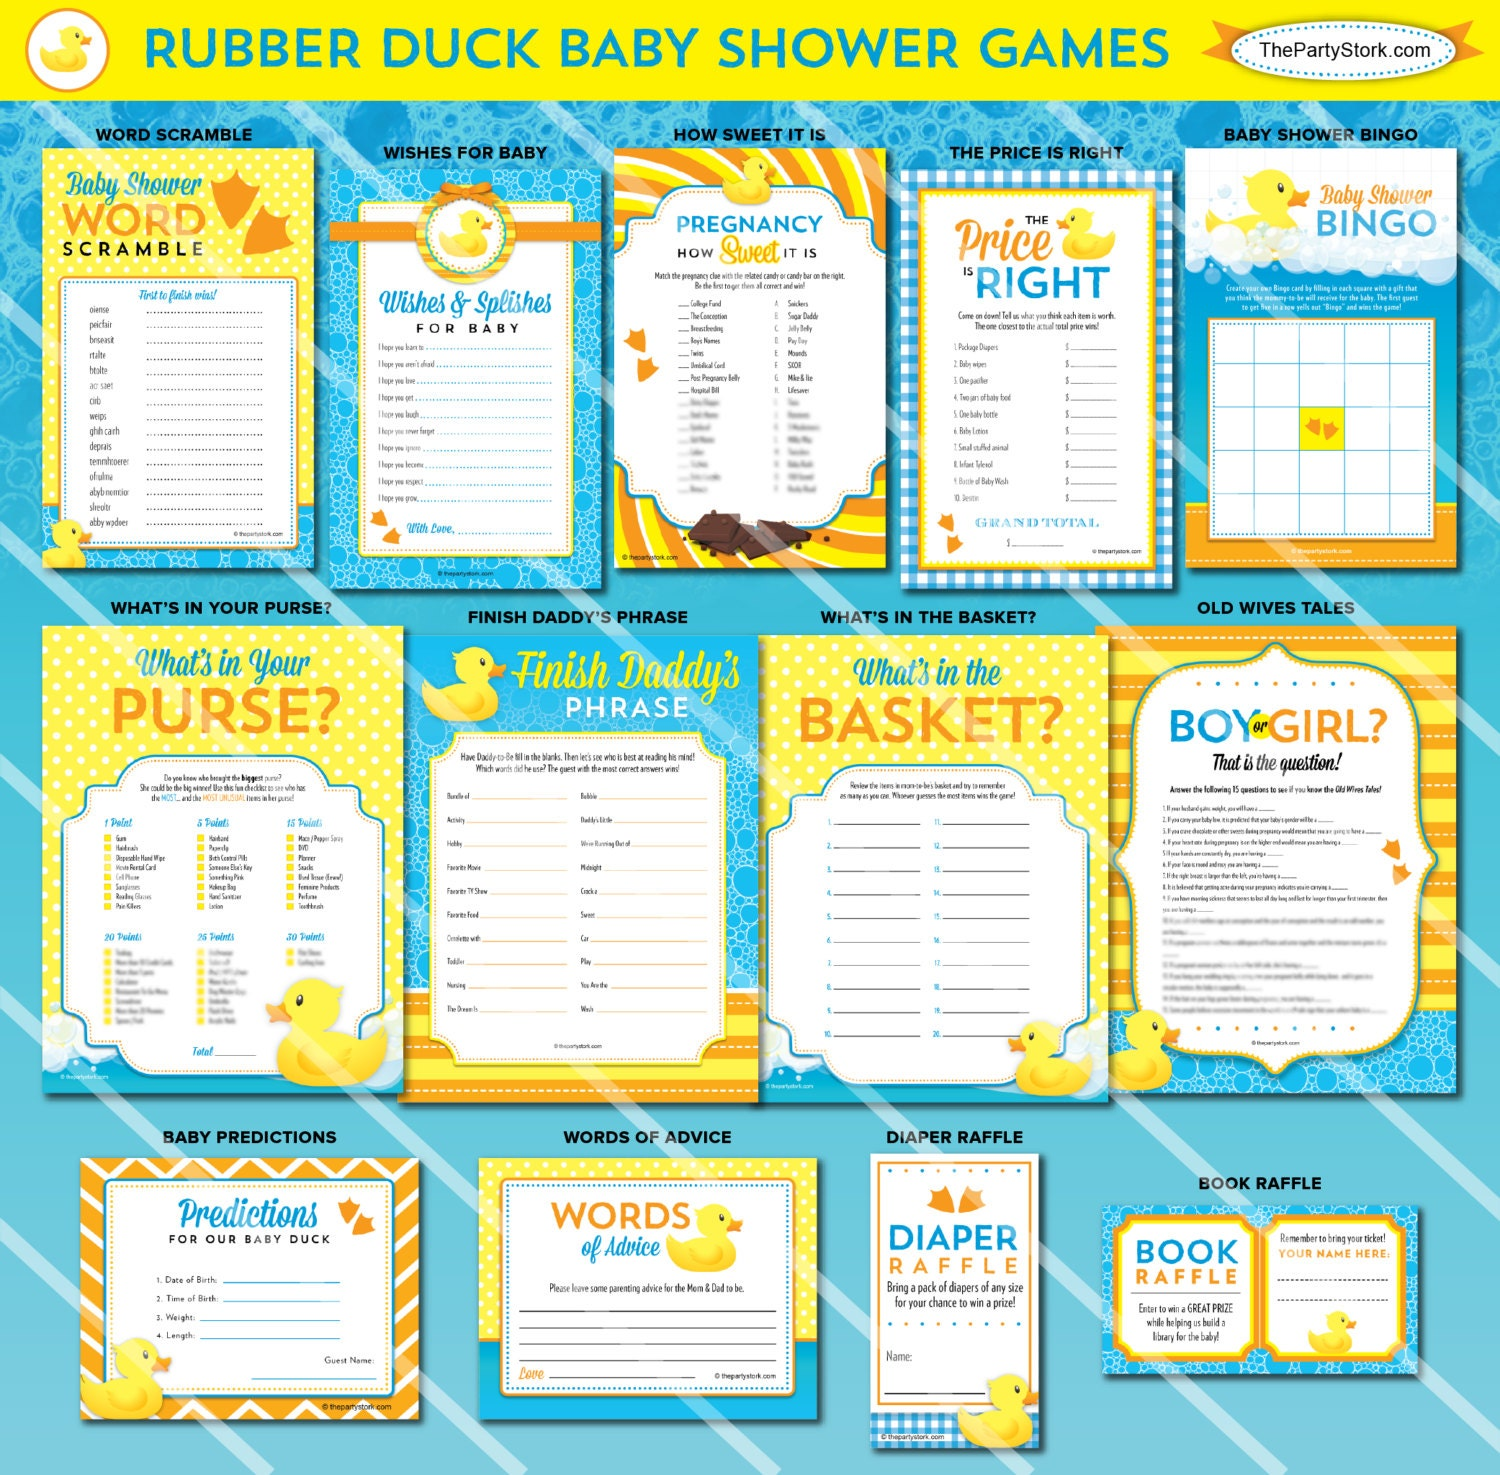 Baby Shower Games: Rubber Duck Baby Shower Games Baby Shower Games For Girl Or